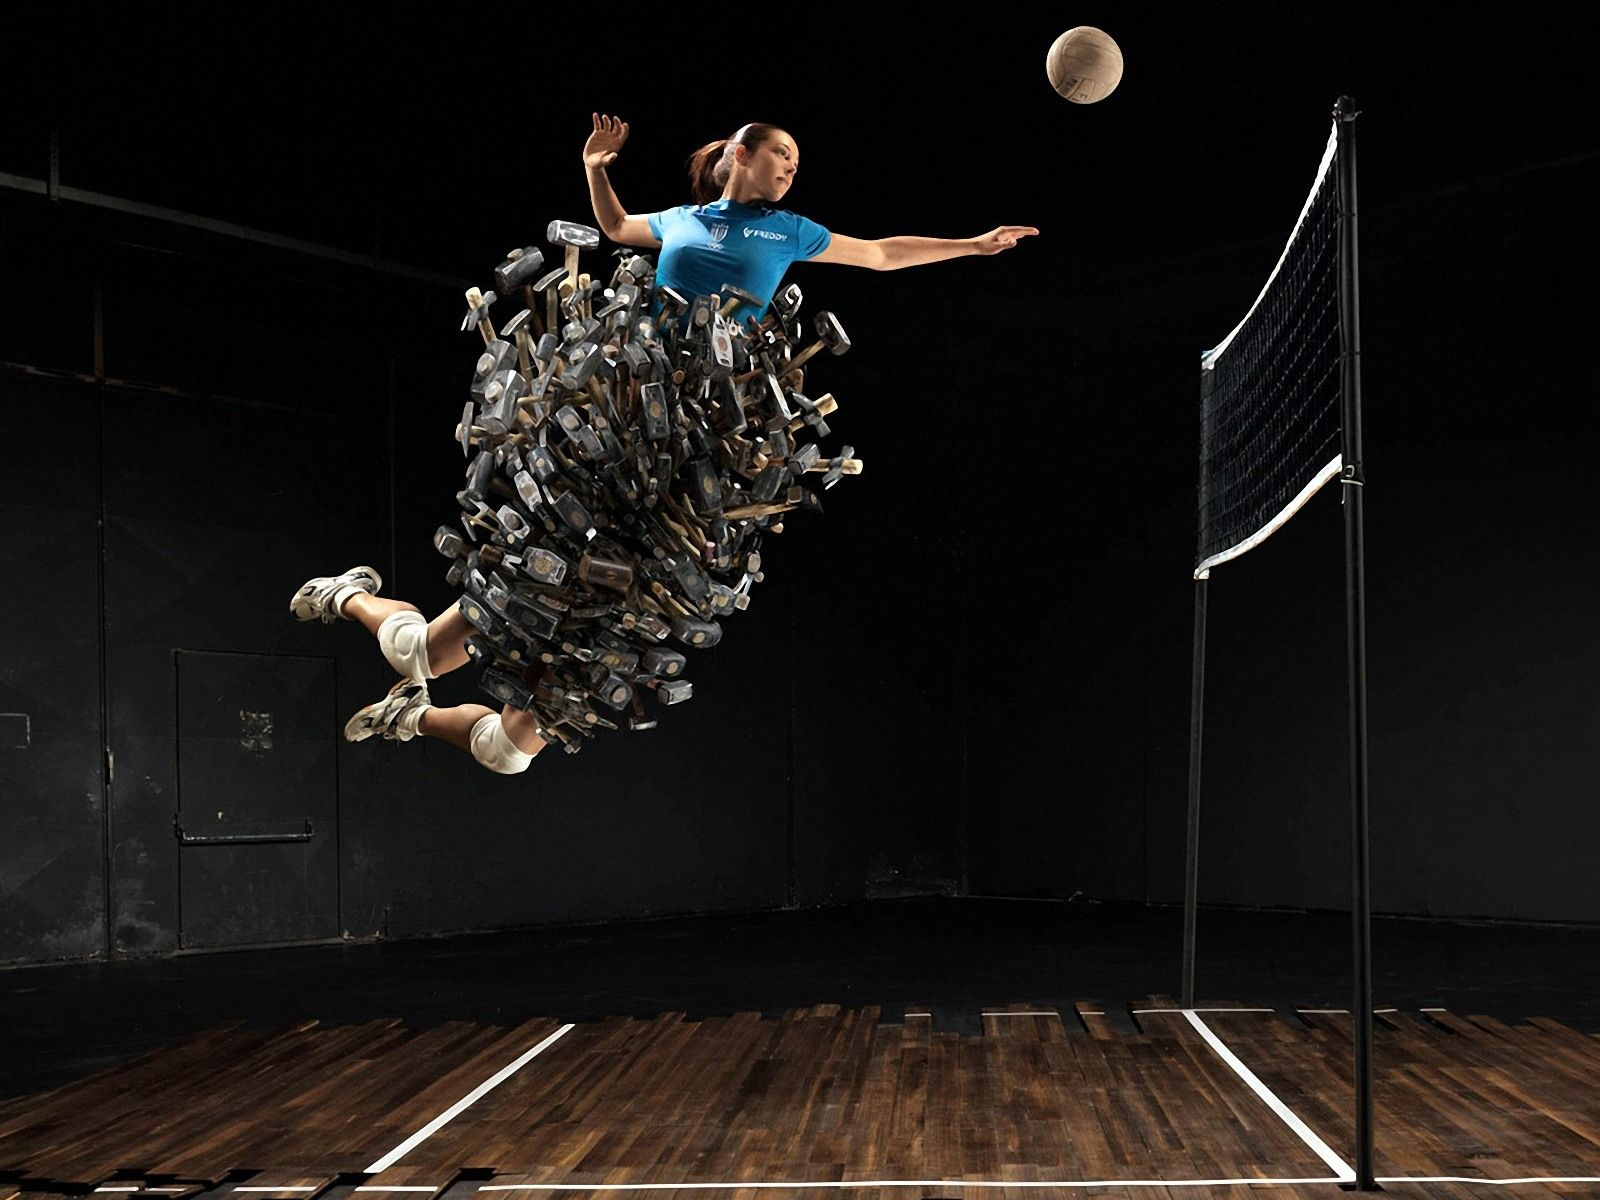 Volleyball Wallpapers High Quality Resolution sports